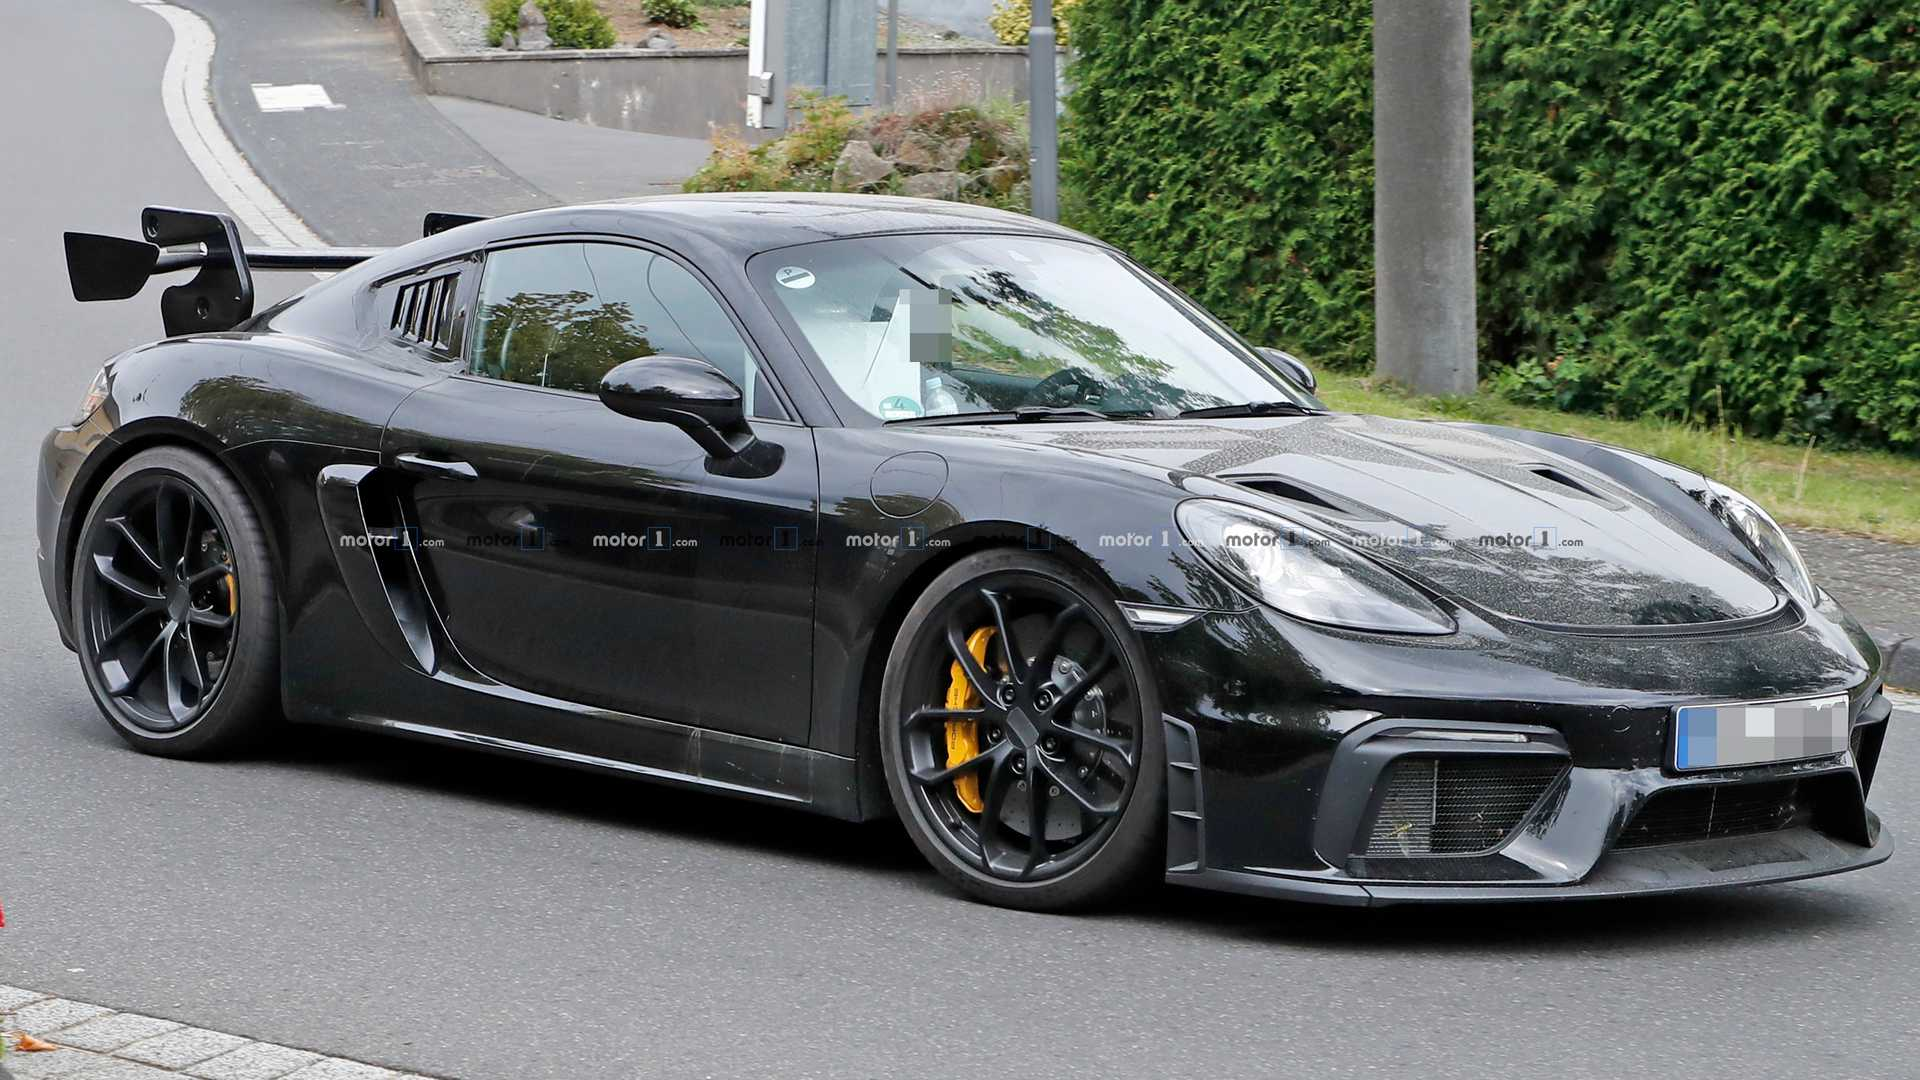 Porsche 718 Cayman Gt4 Rs Potentially Spied Testing At The Ring